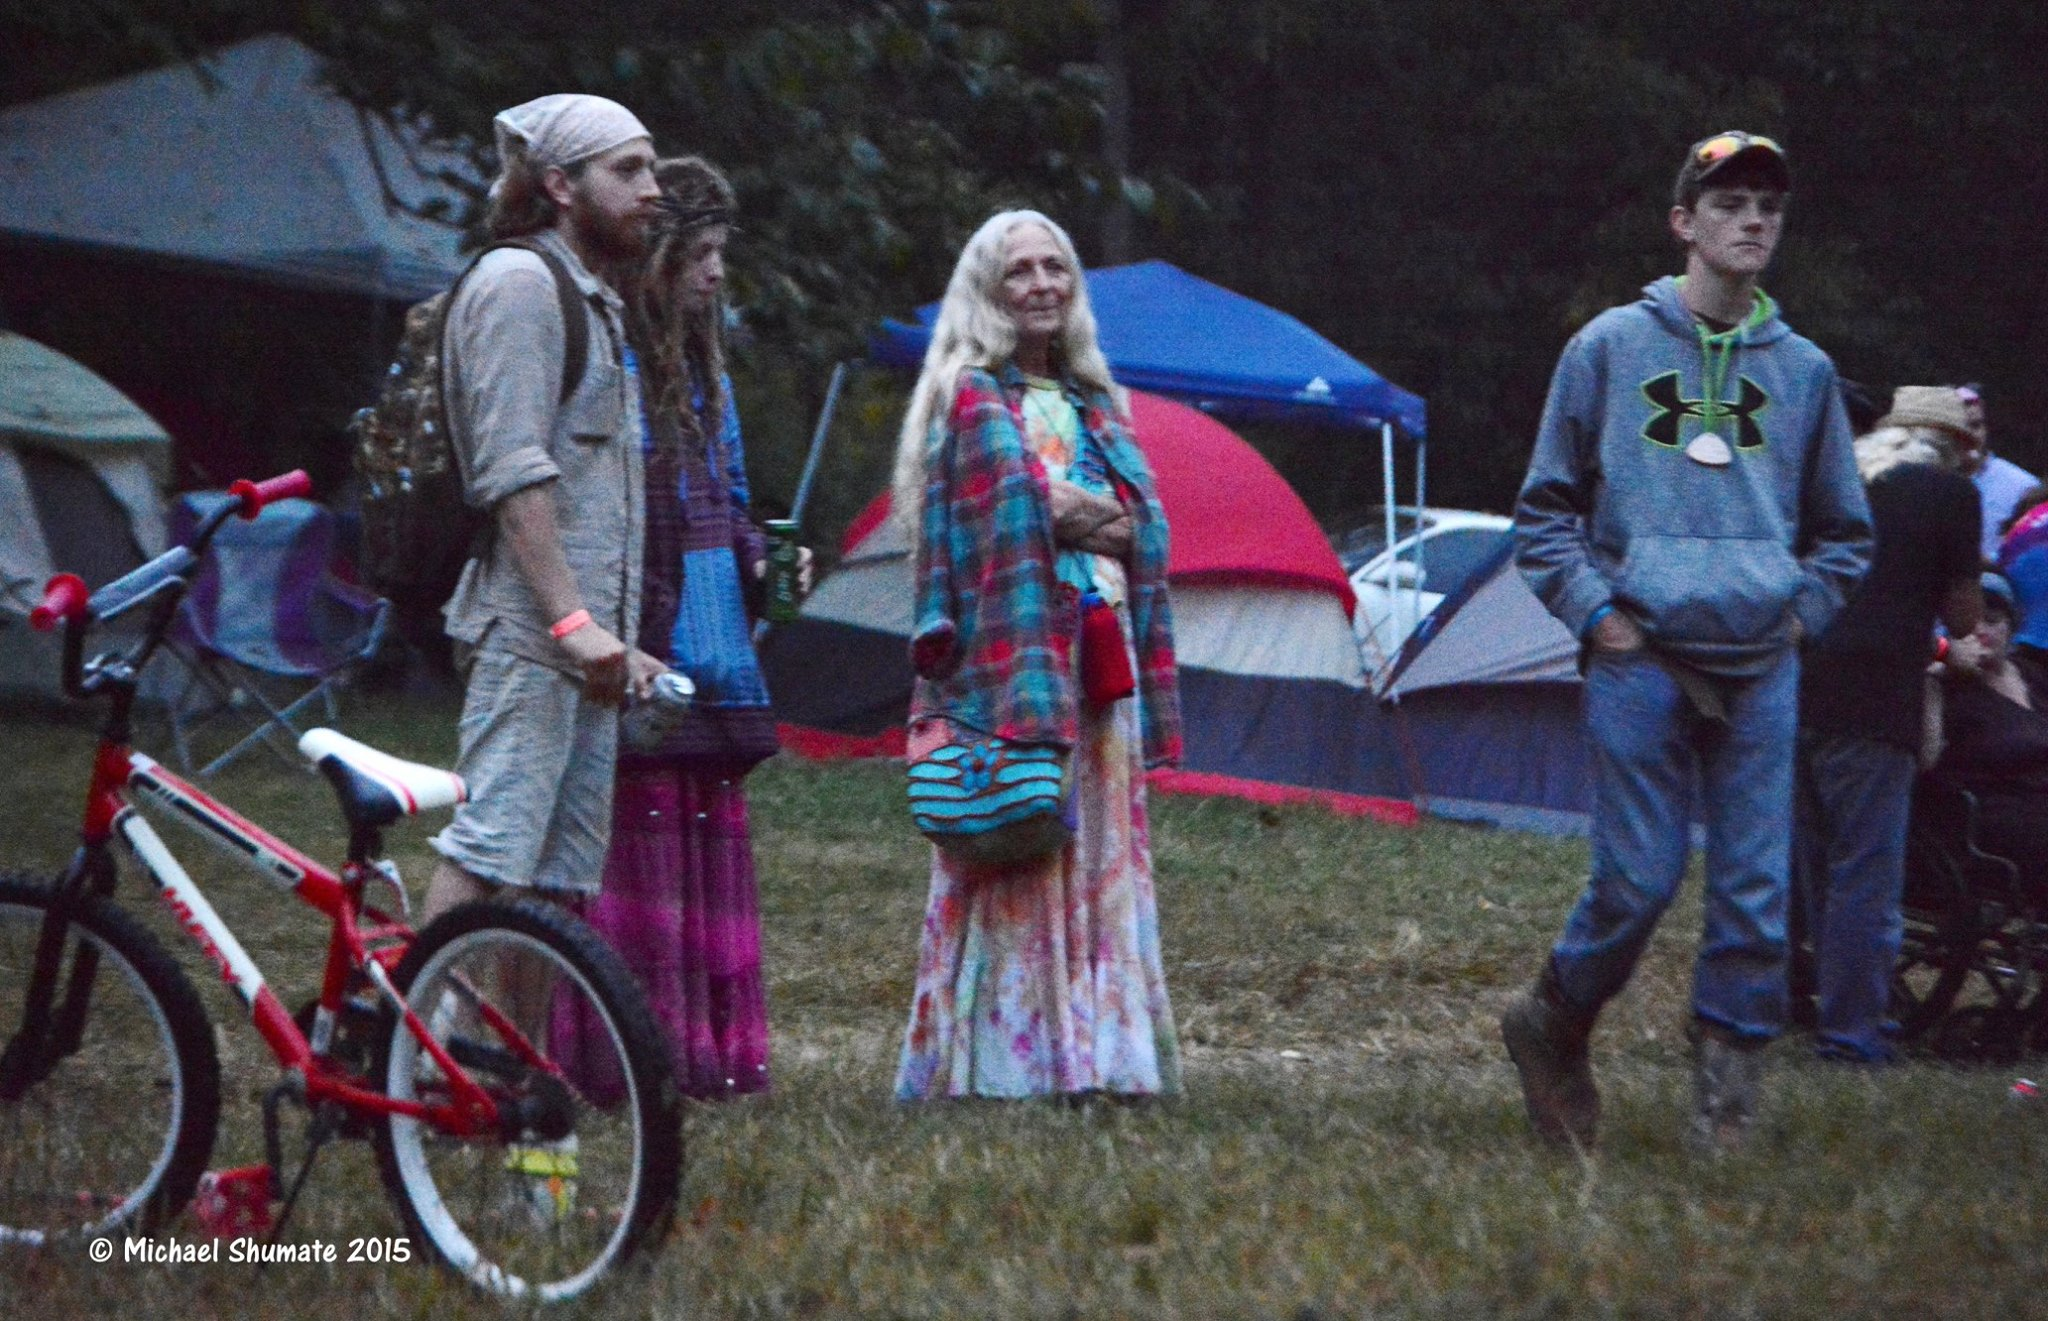 hippies at music festival by michael shumate fe 2015